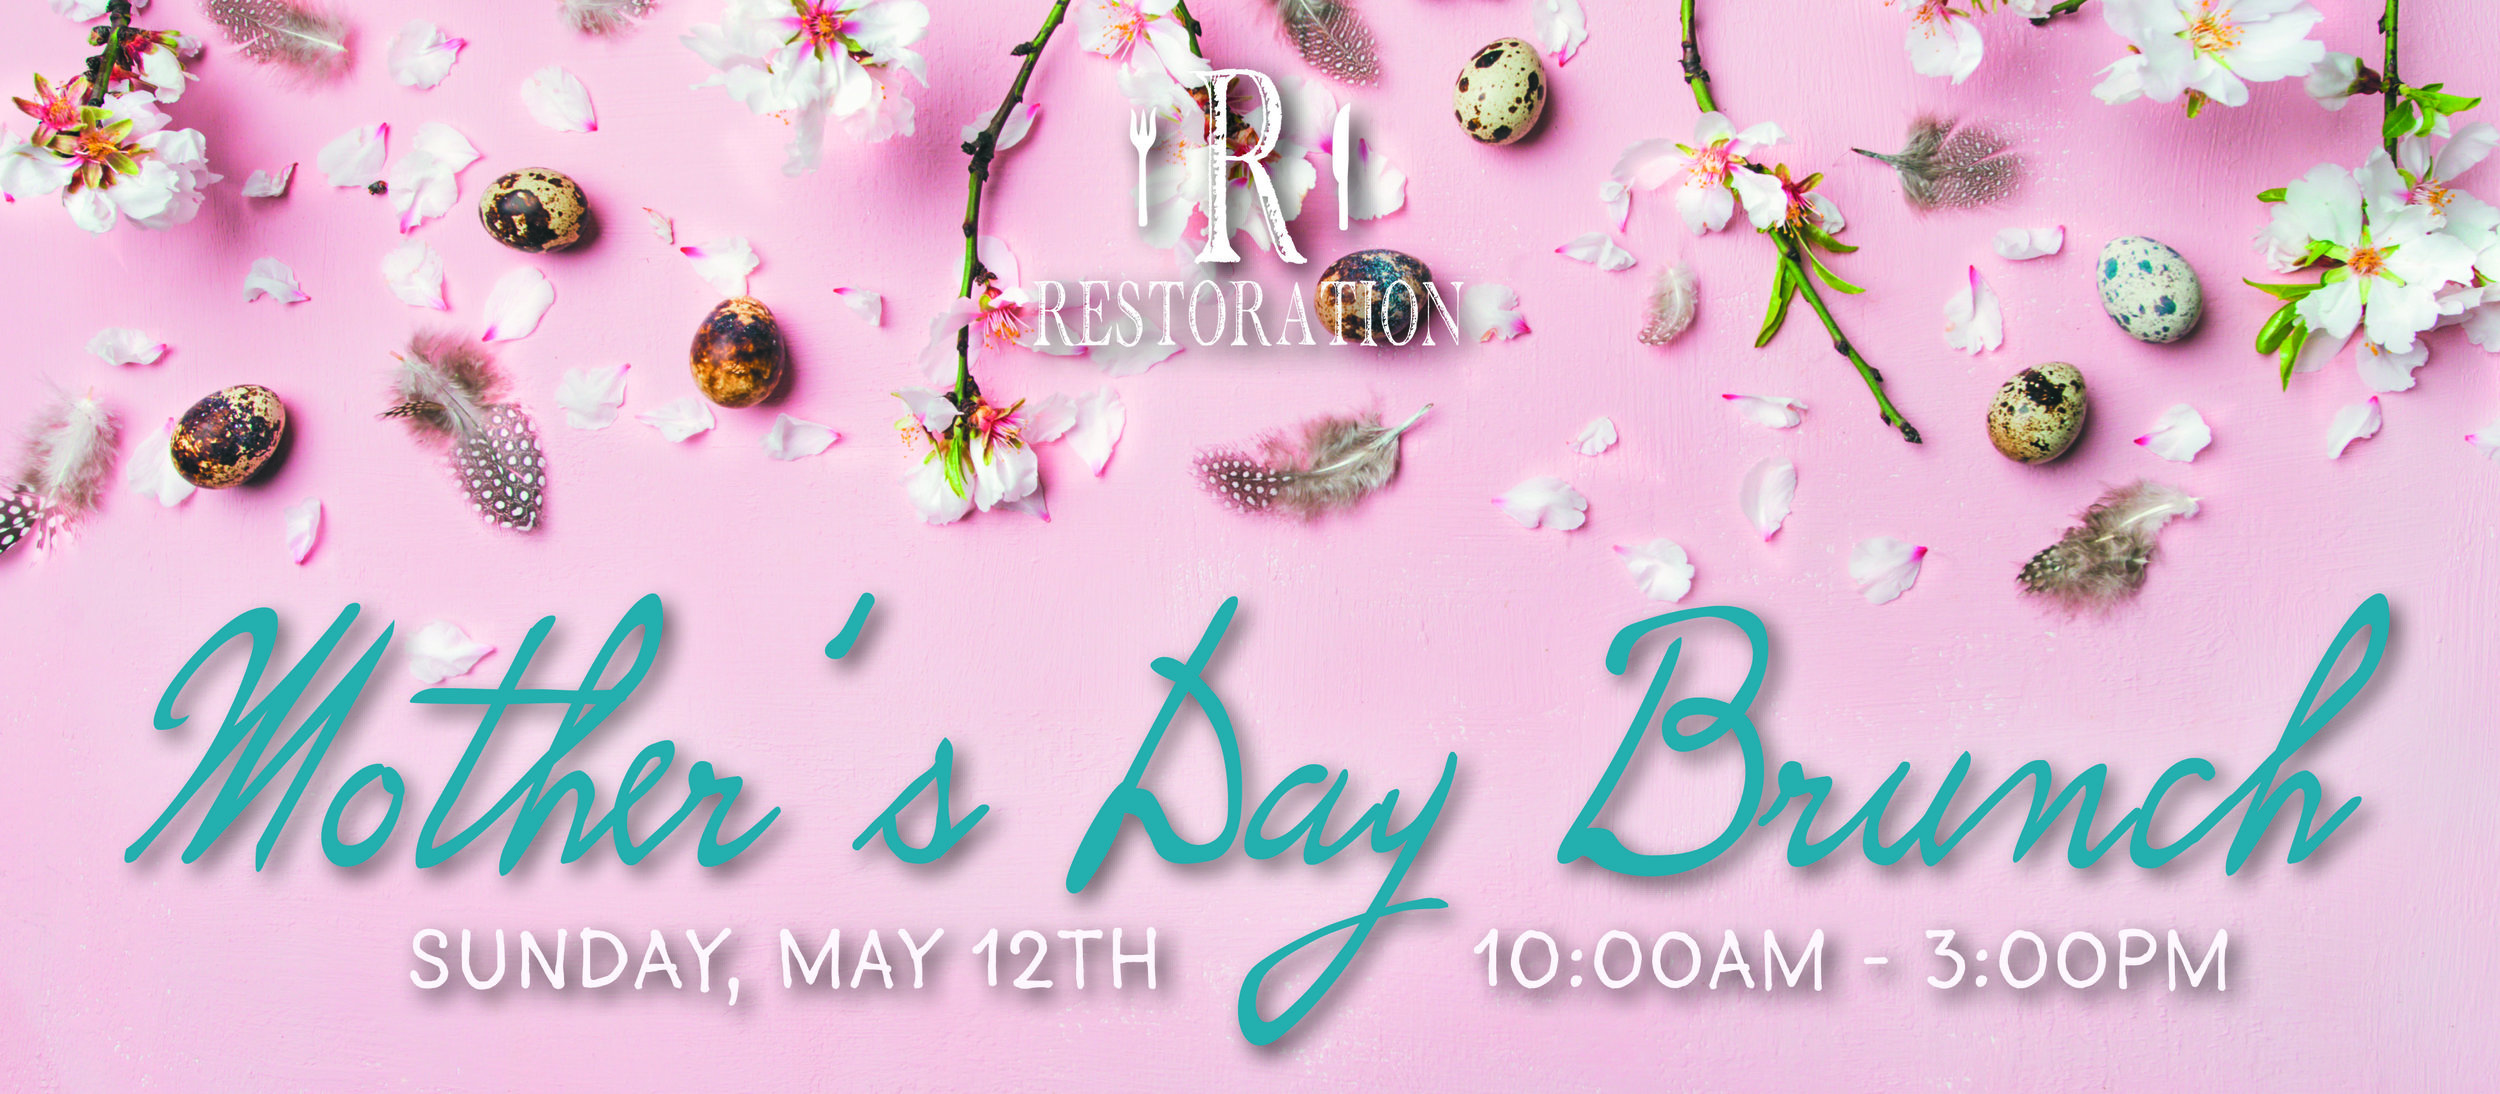 Mothers Day 2019 Banner.jpg